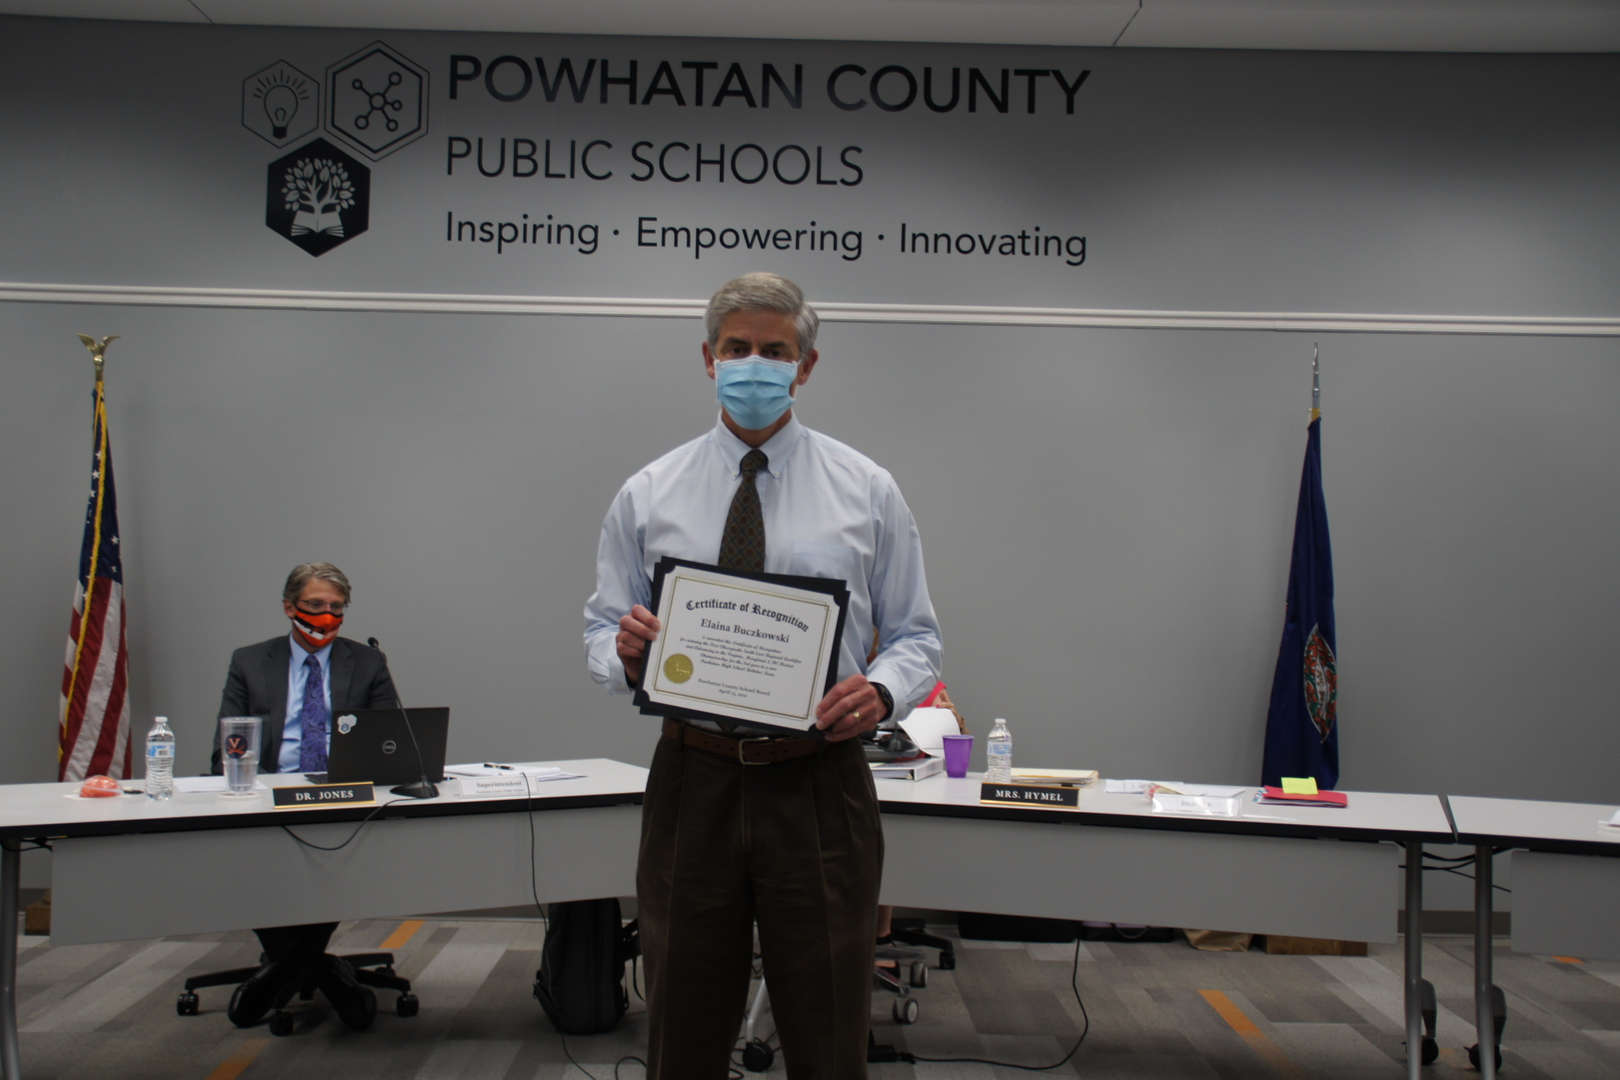 Bob Benway receives Robotics Awards for Students